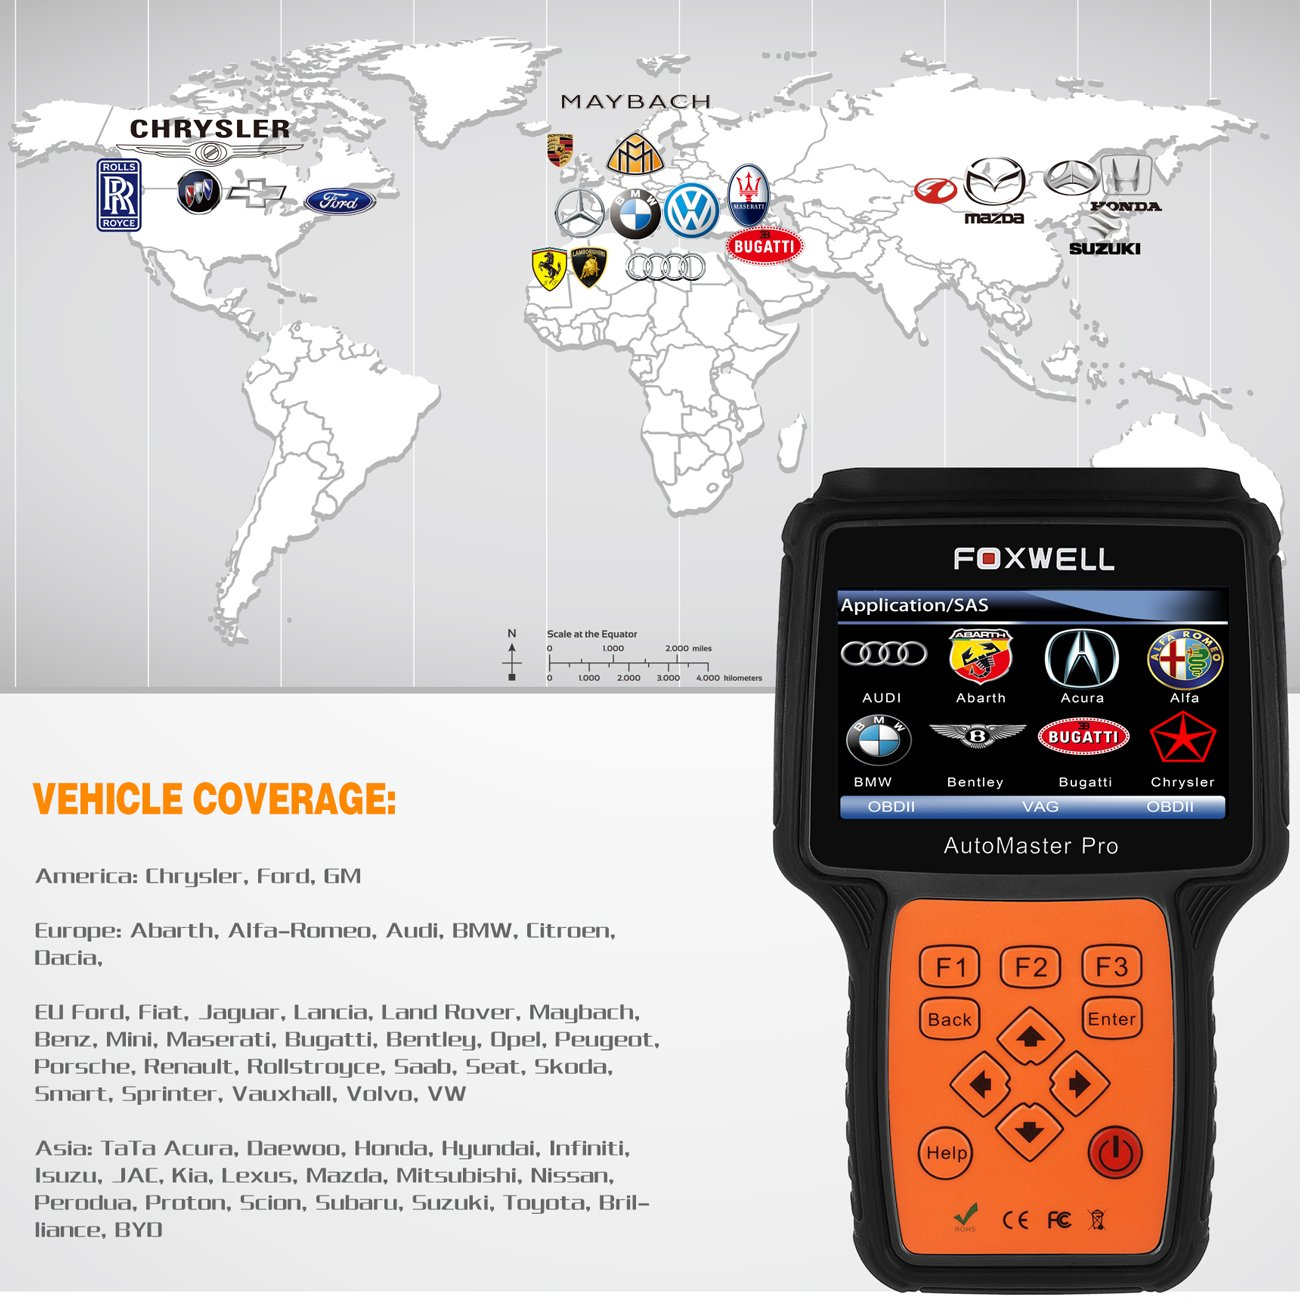 FOXWELL NT614 Automotive Scanner All Brand 4 System OBDII OBD2 Code Readers Check Engine ABS Airbag Transmission + EPB Oil Reset Car Diagnostic Tool by FOXWELL (Image #4)